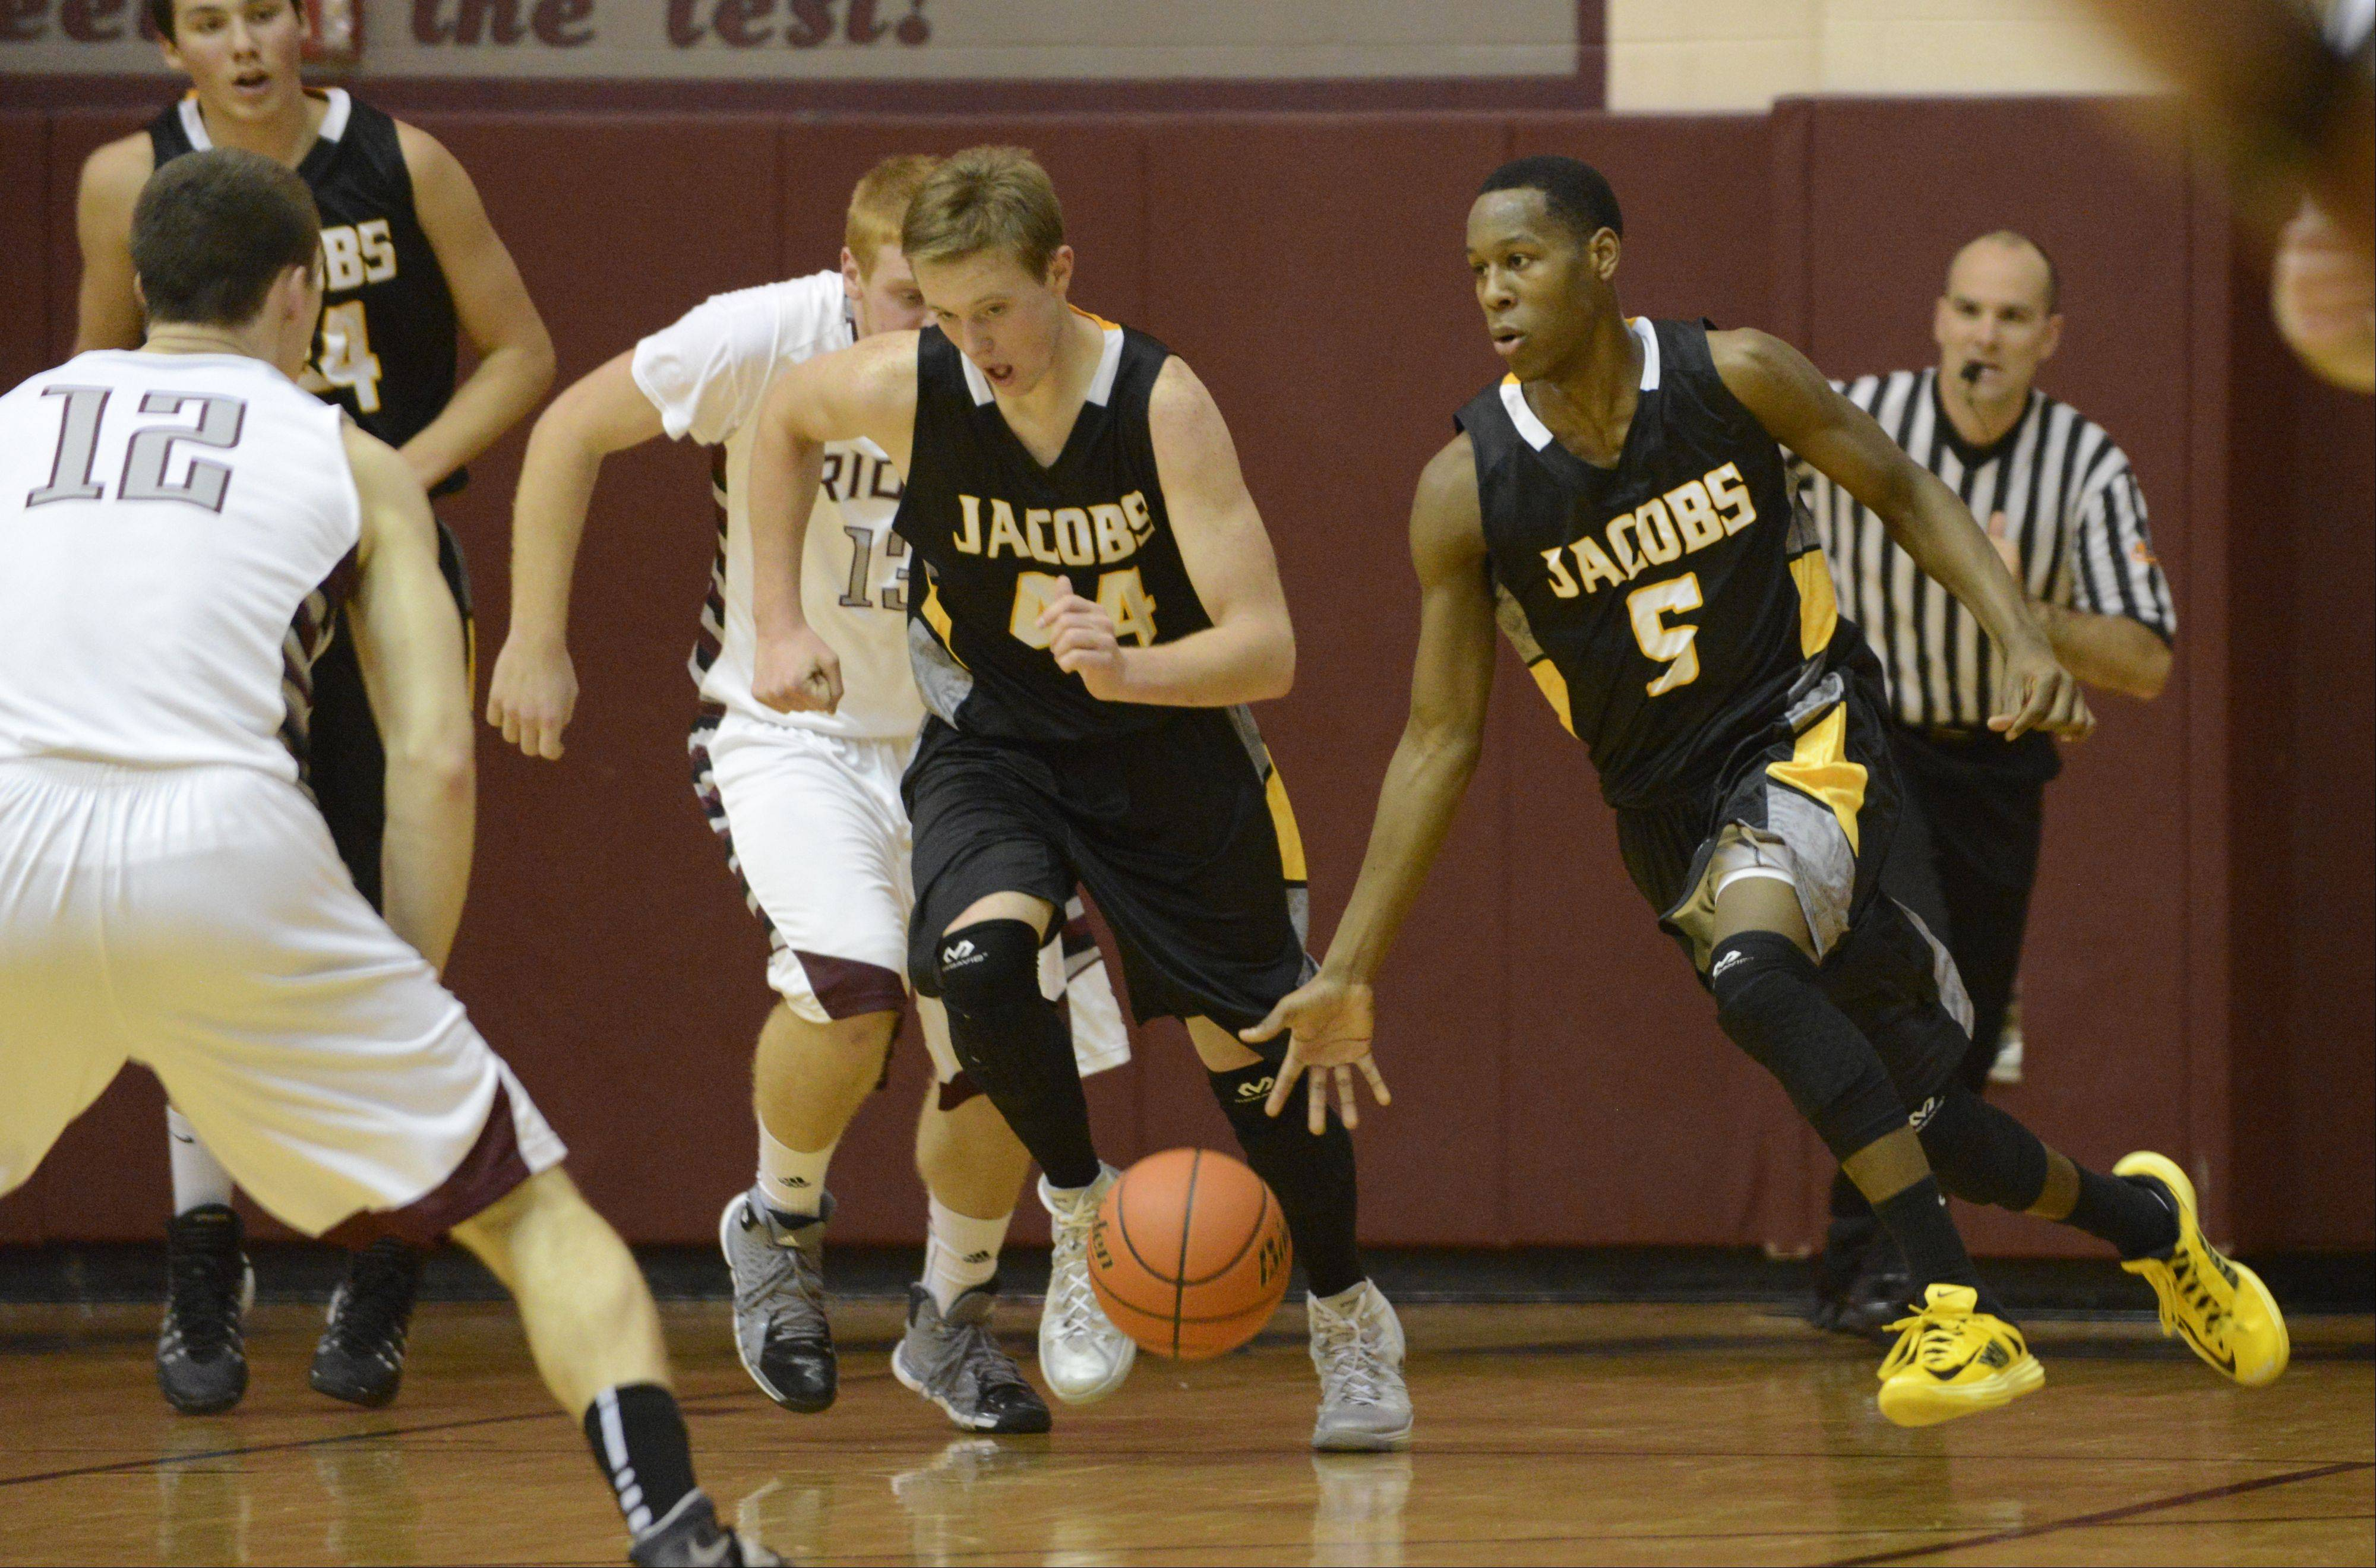 Images from the Jacobs vs. Prairie Ridge boys basketball game Tuesday, December 17, 2013.